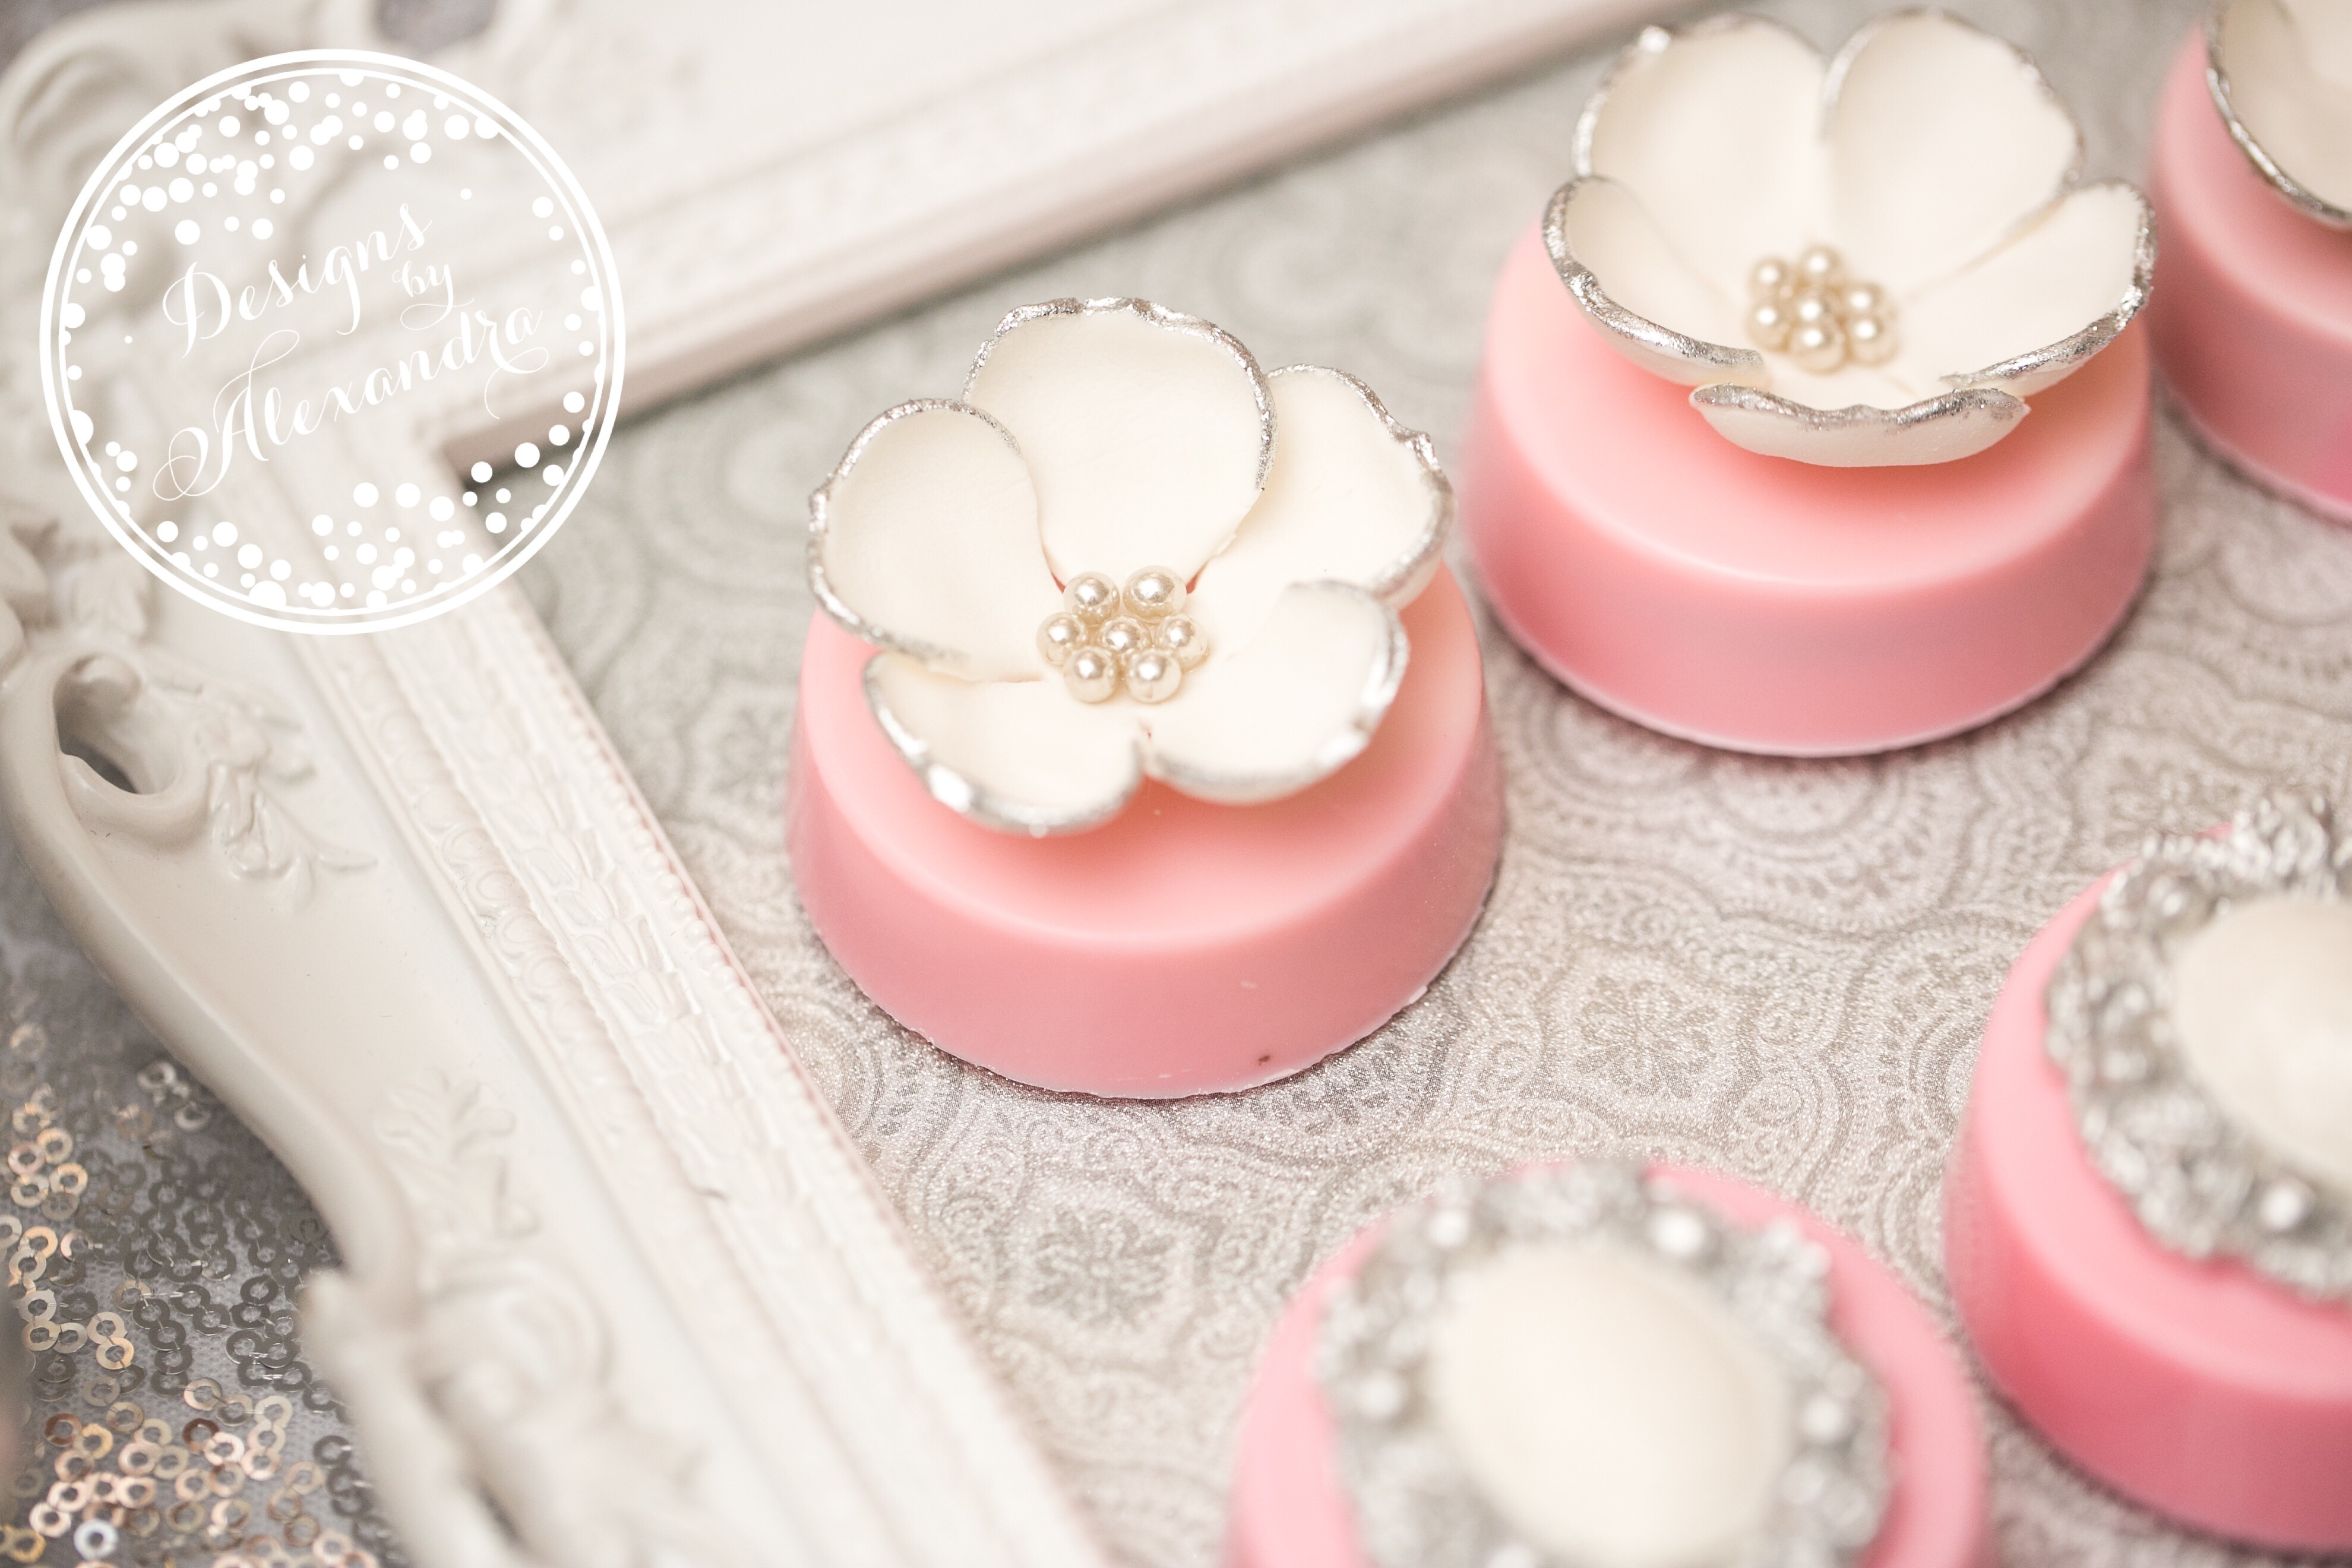 Pink mini cakes with white sugar flowers